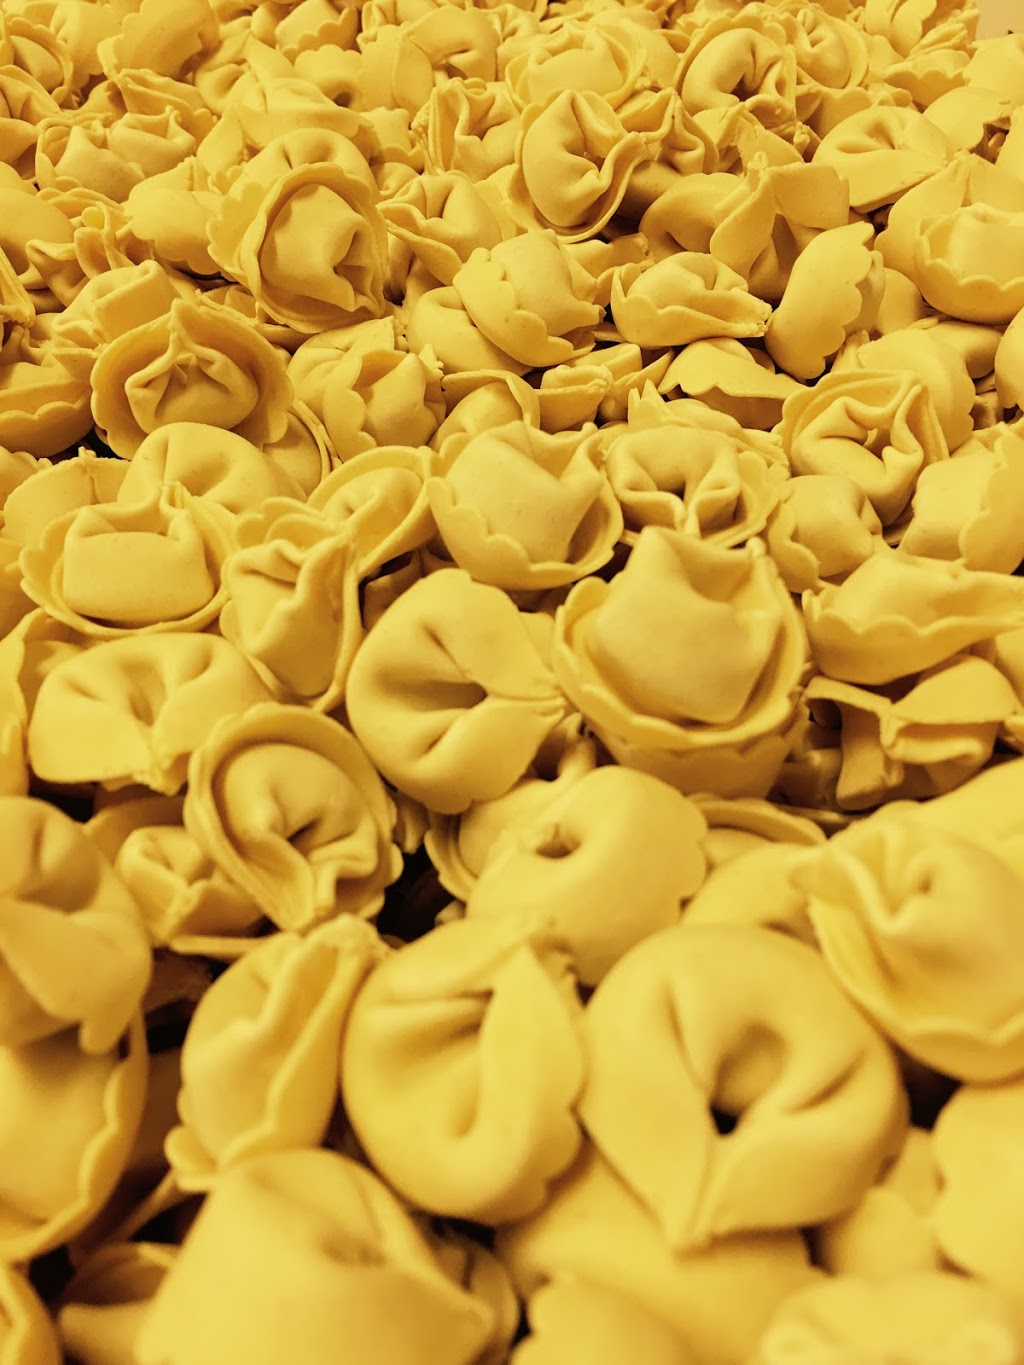 Peppes Pasta | store | 151 Ramsay St, Haberfield NSW 2045, Australia | 0297971778 OR +61 2 9797 1778